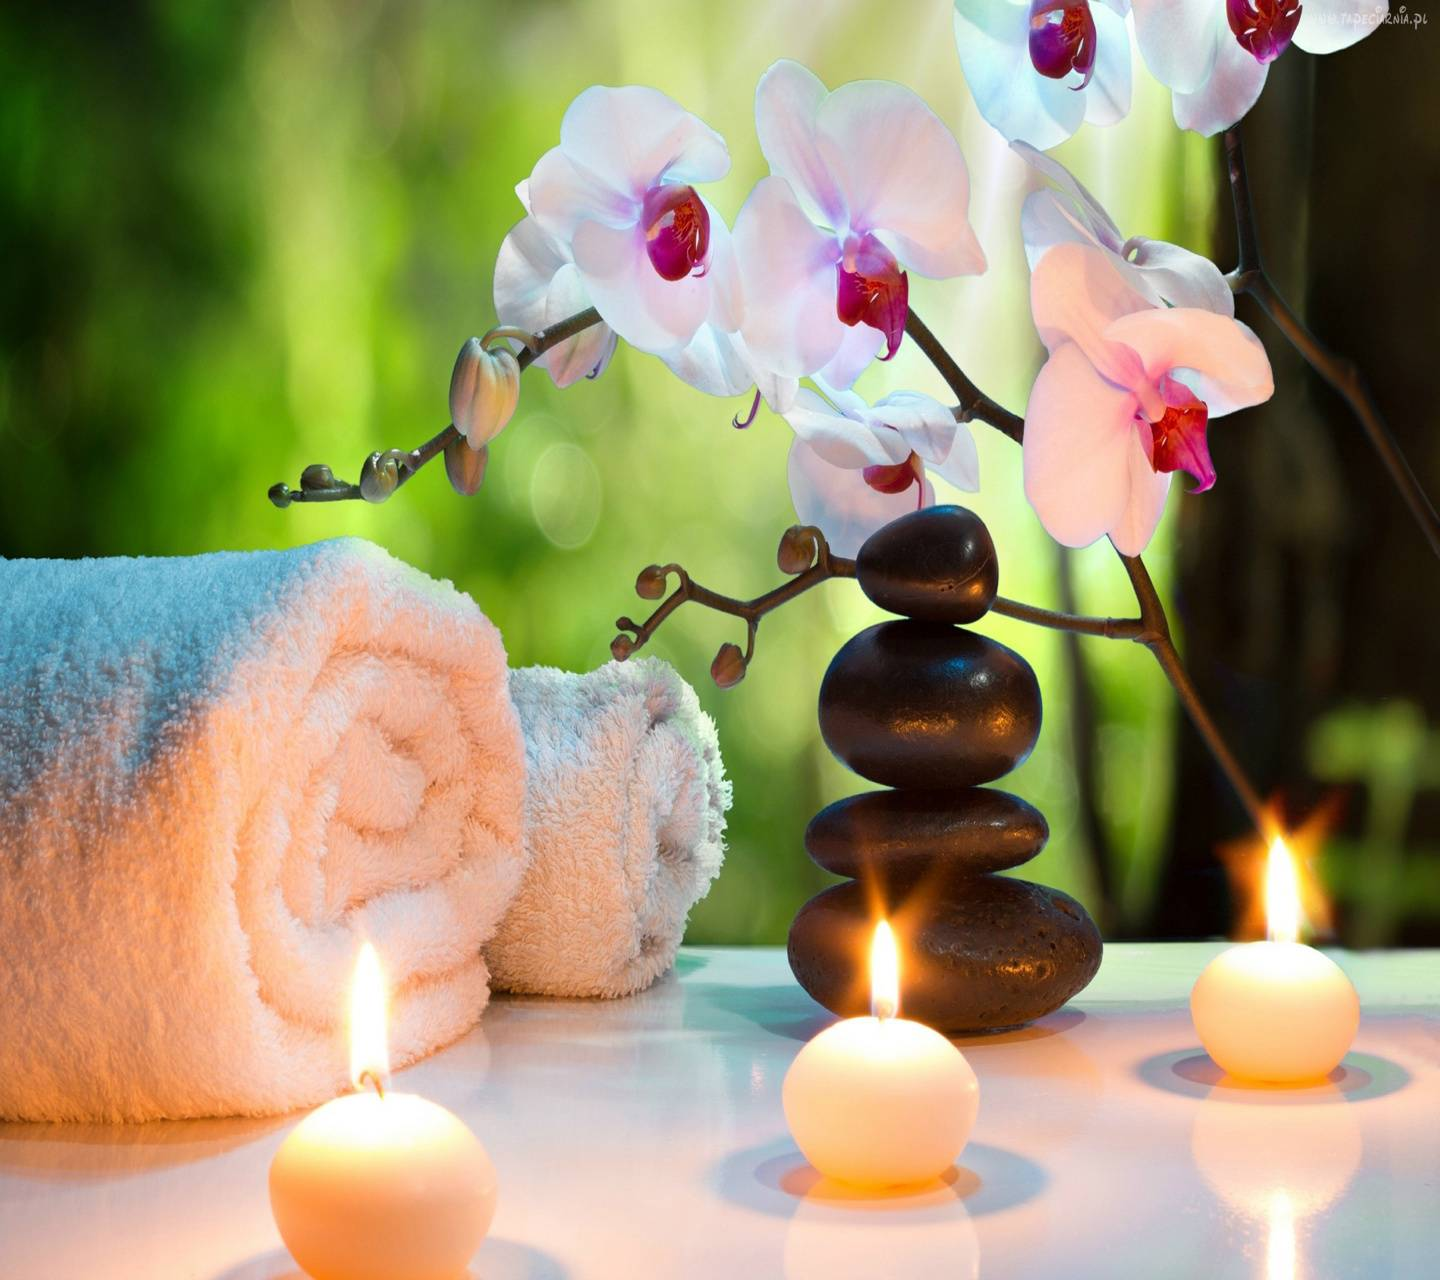 Spa Relexing